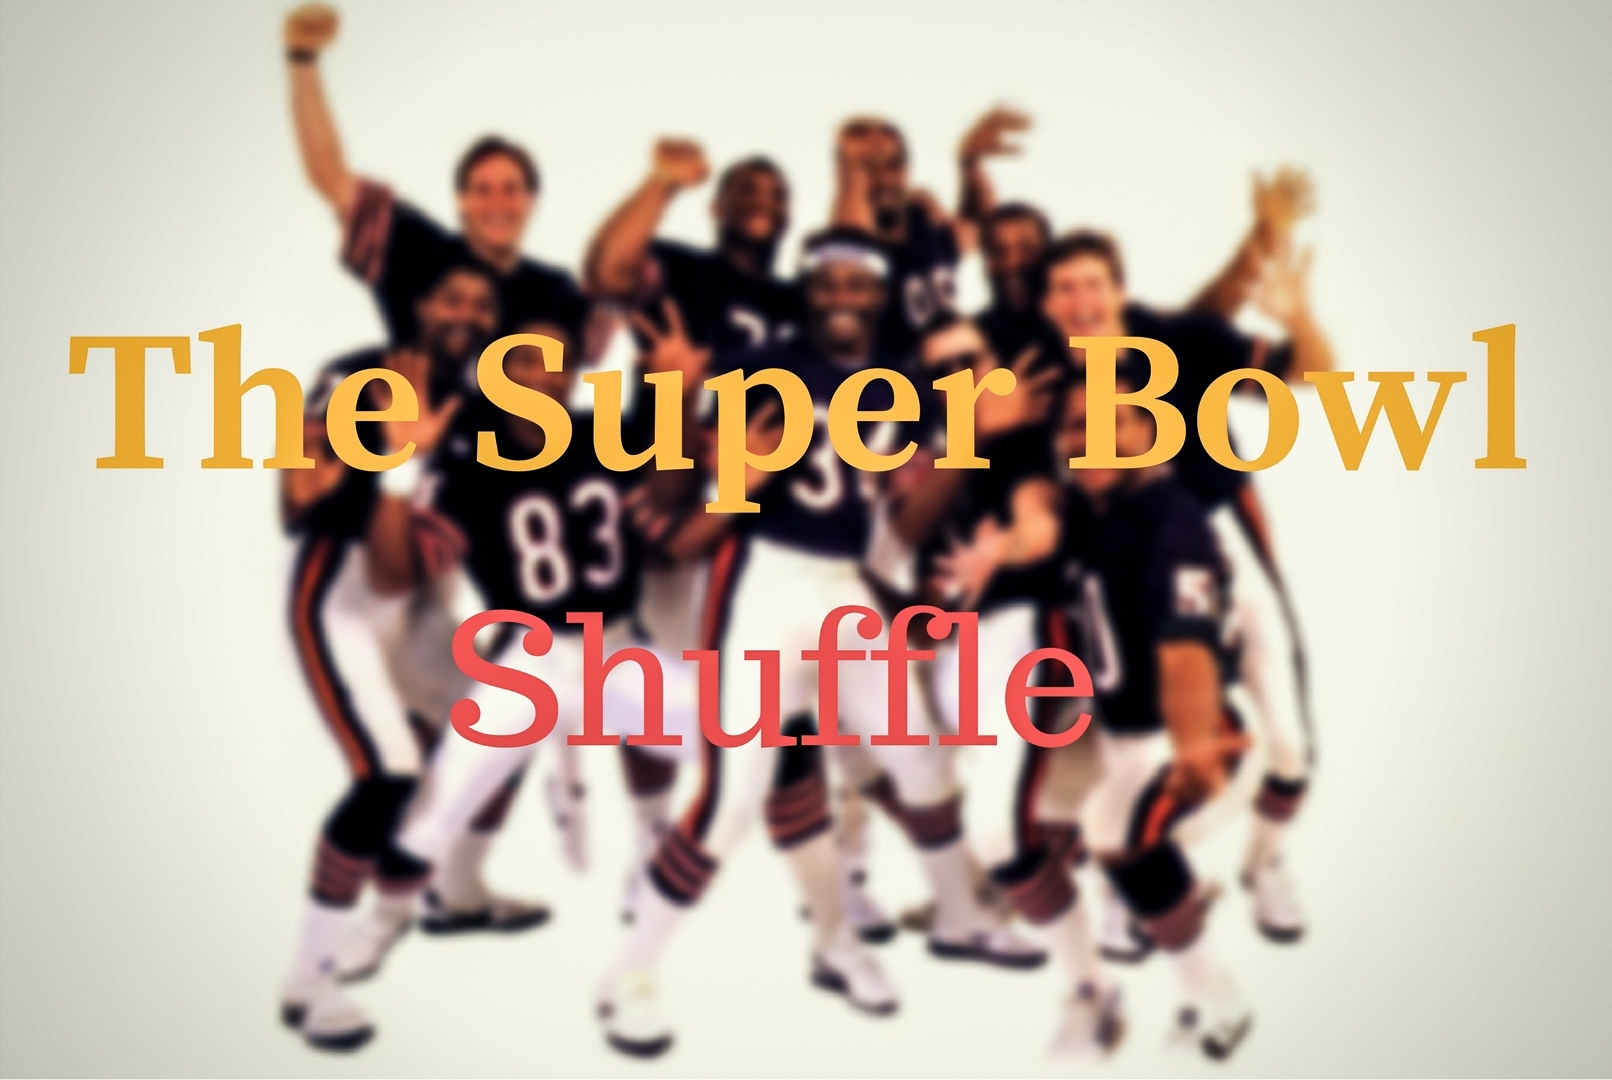 Chicago4You | Chicago Bears: The Super Bowl Shuffle in The Super Bowl Shuffle